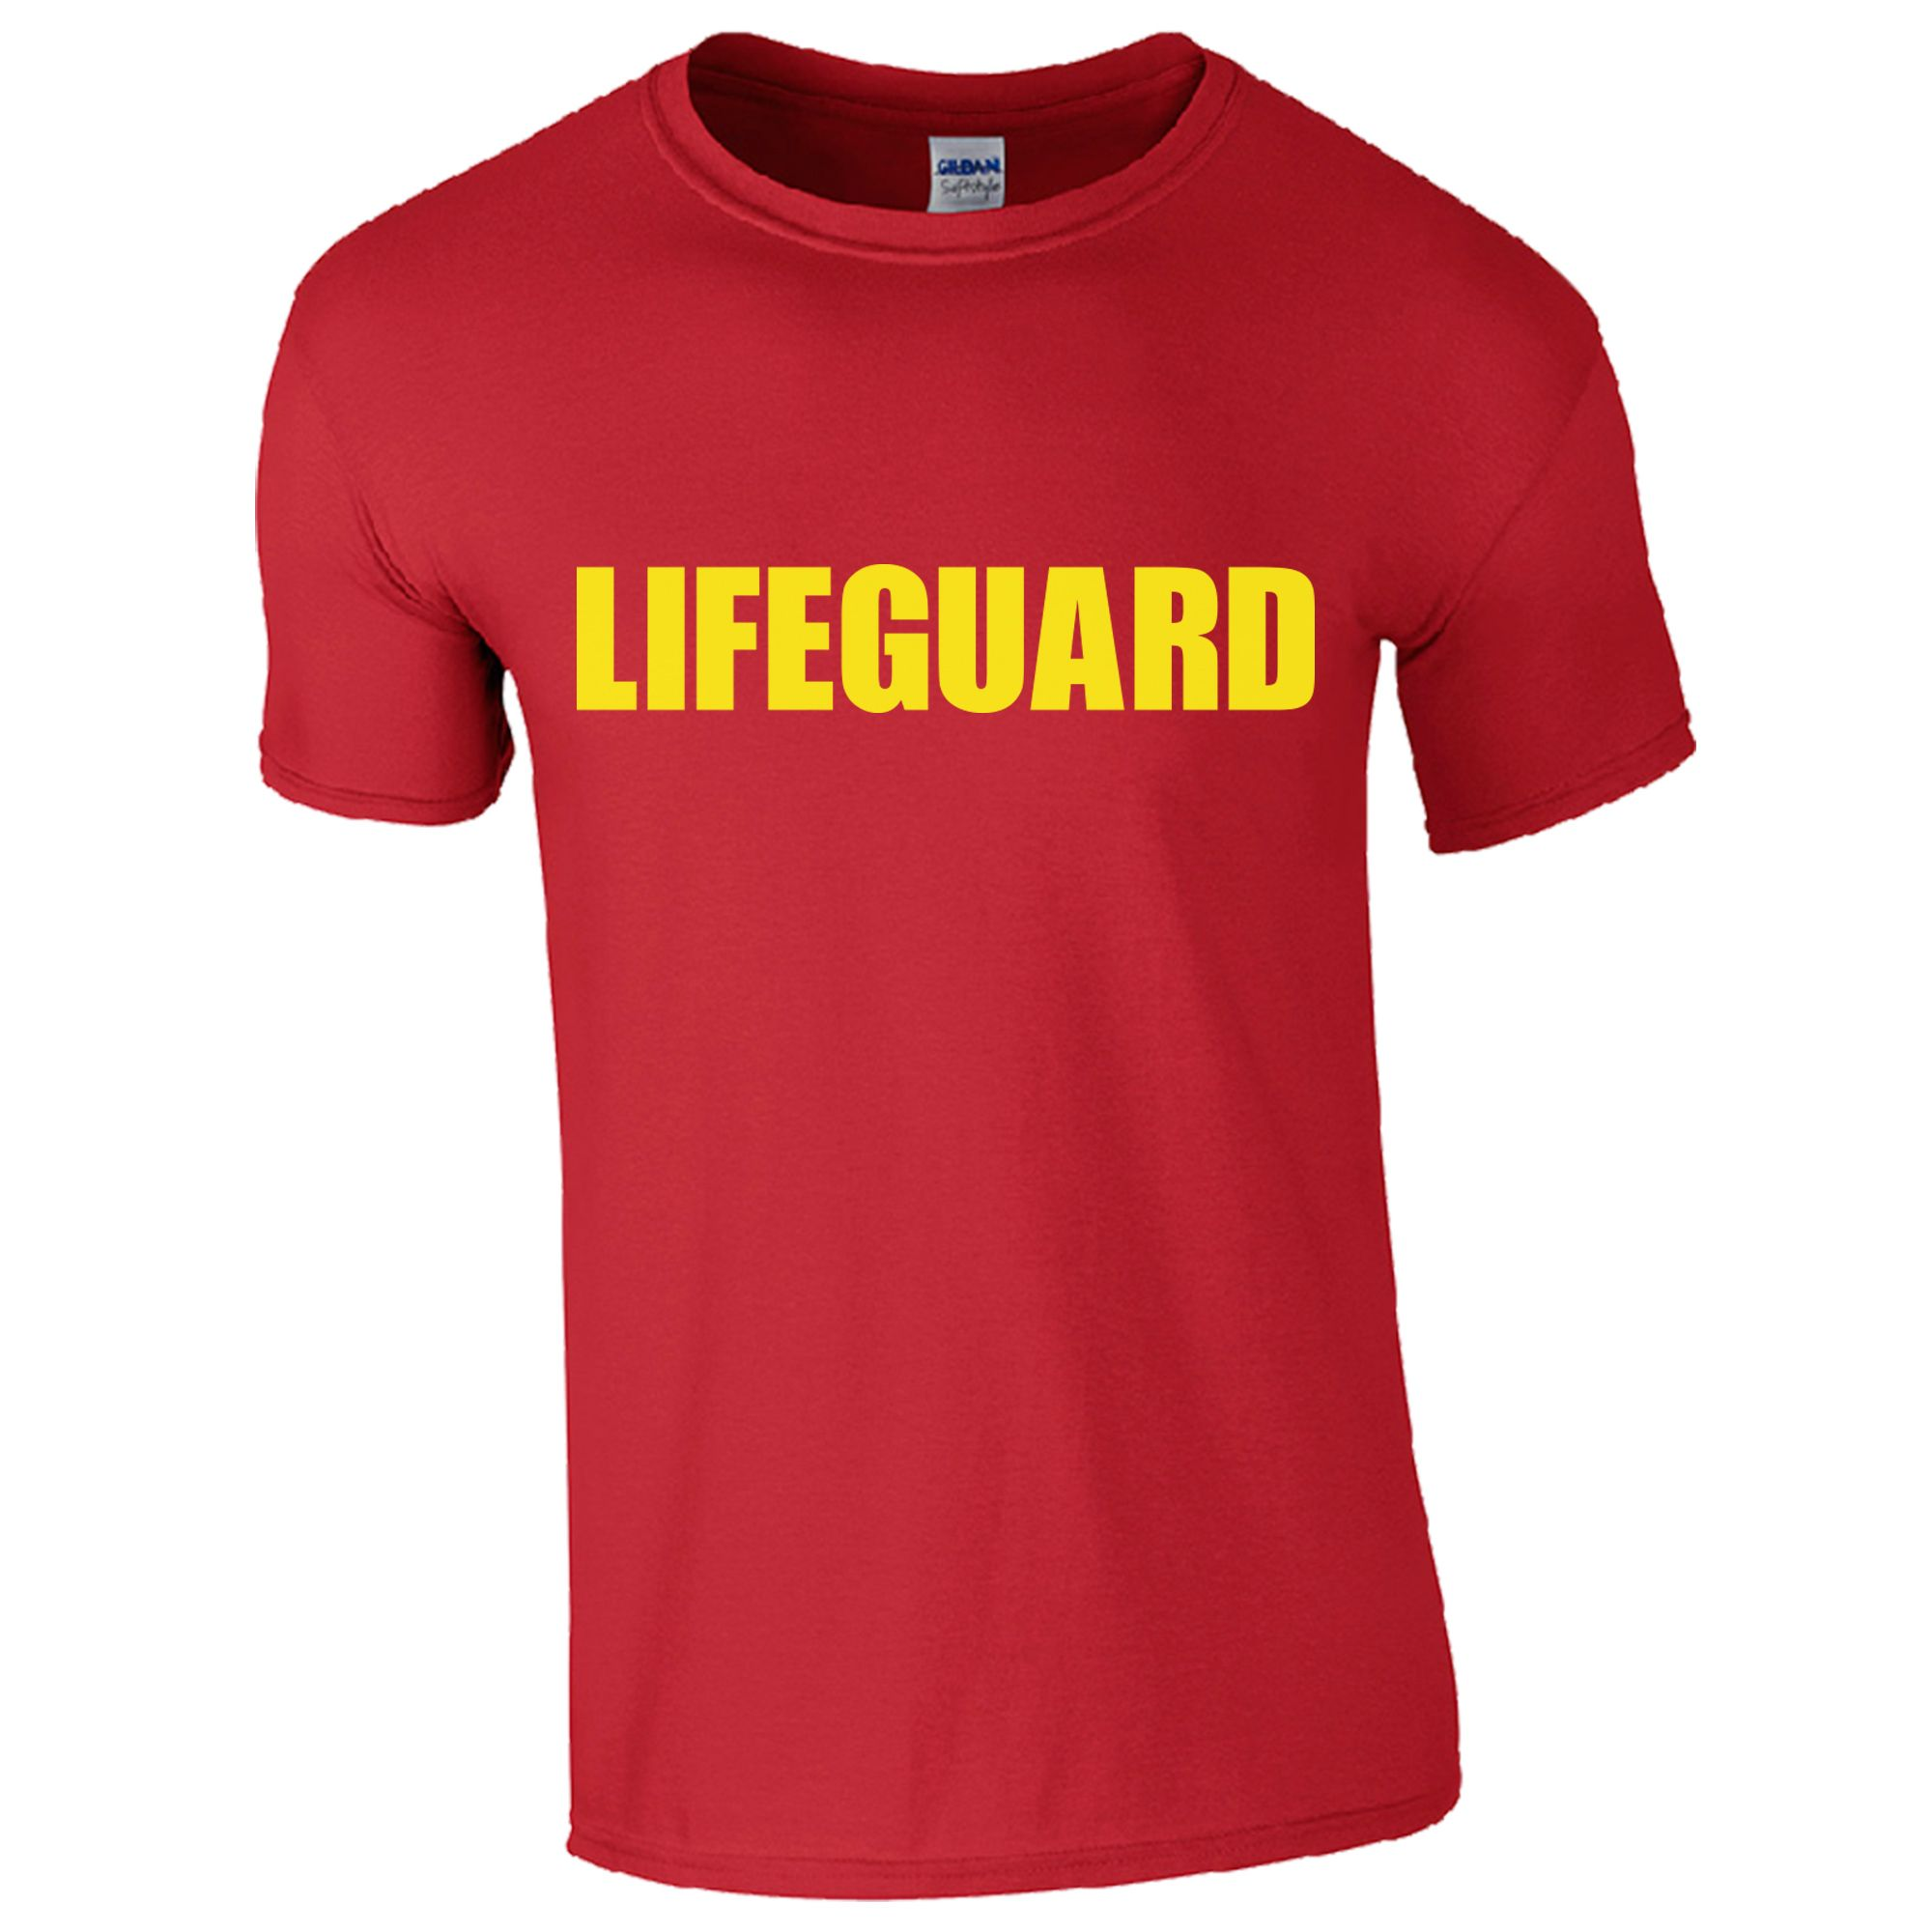 a15c90d6cd3c CHILDRENS LIFEGUARD RED T-SHIRT